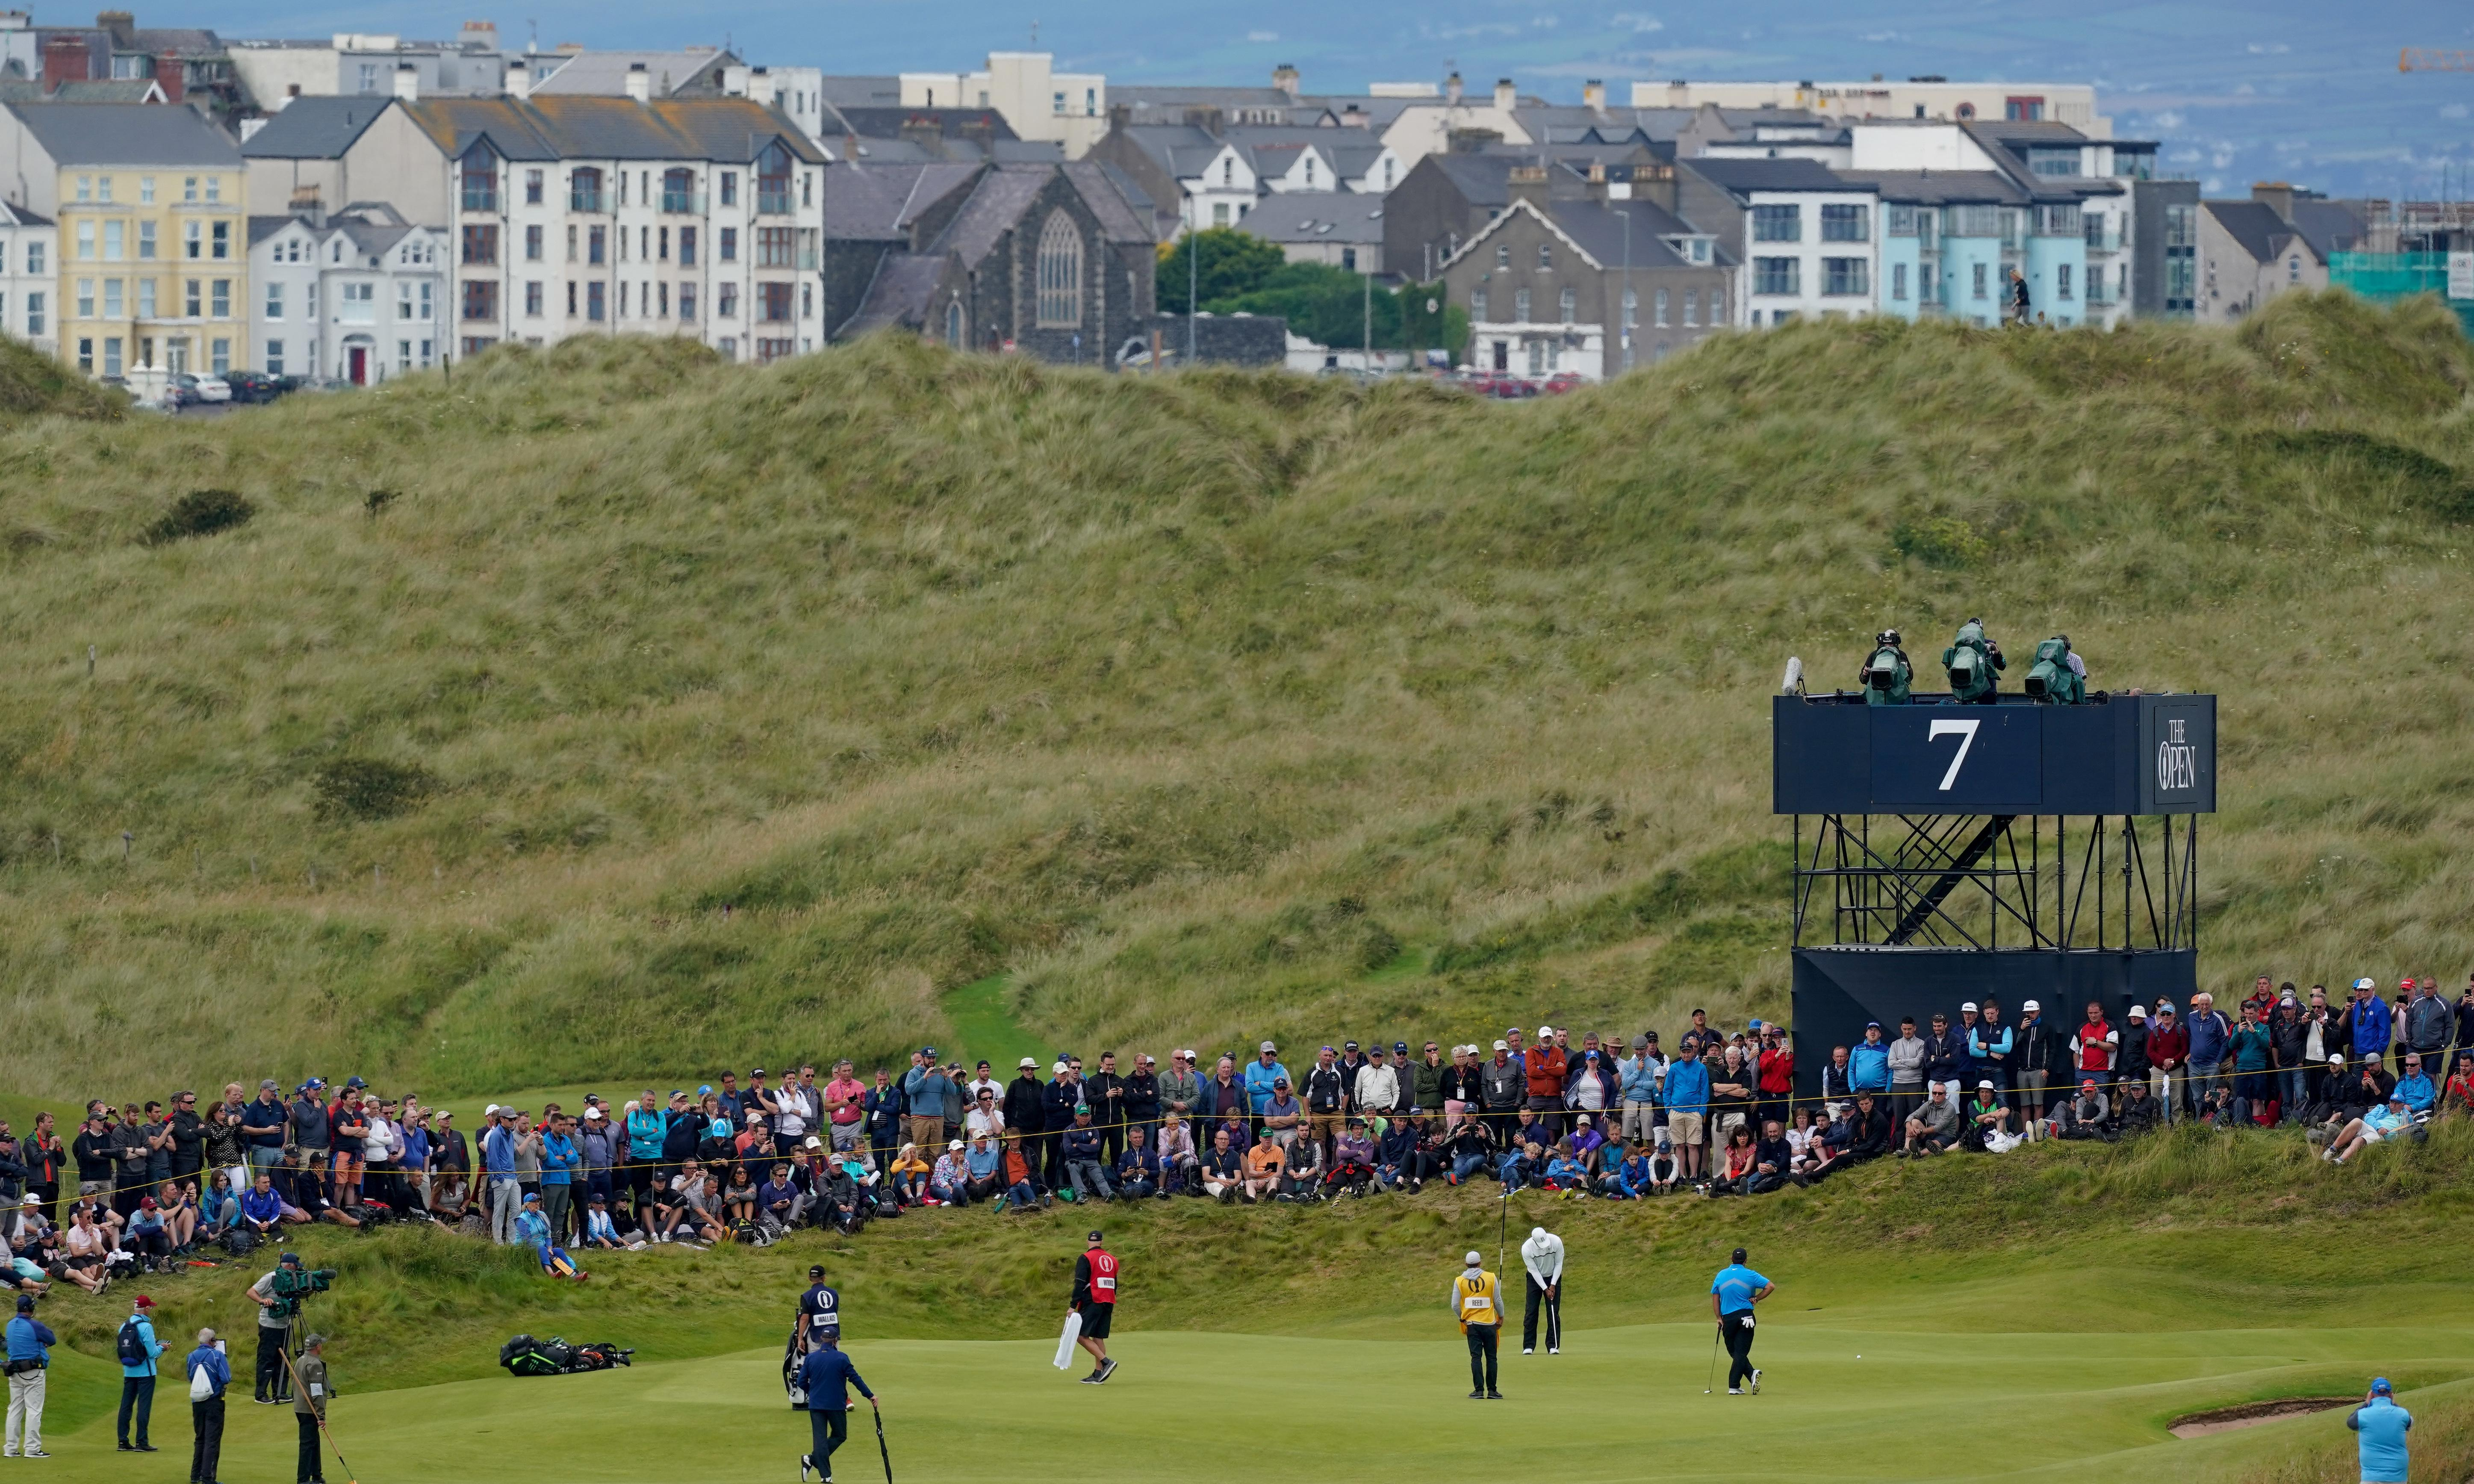 Northern Ireland's rare Open helps Portrush cash in on the green pound